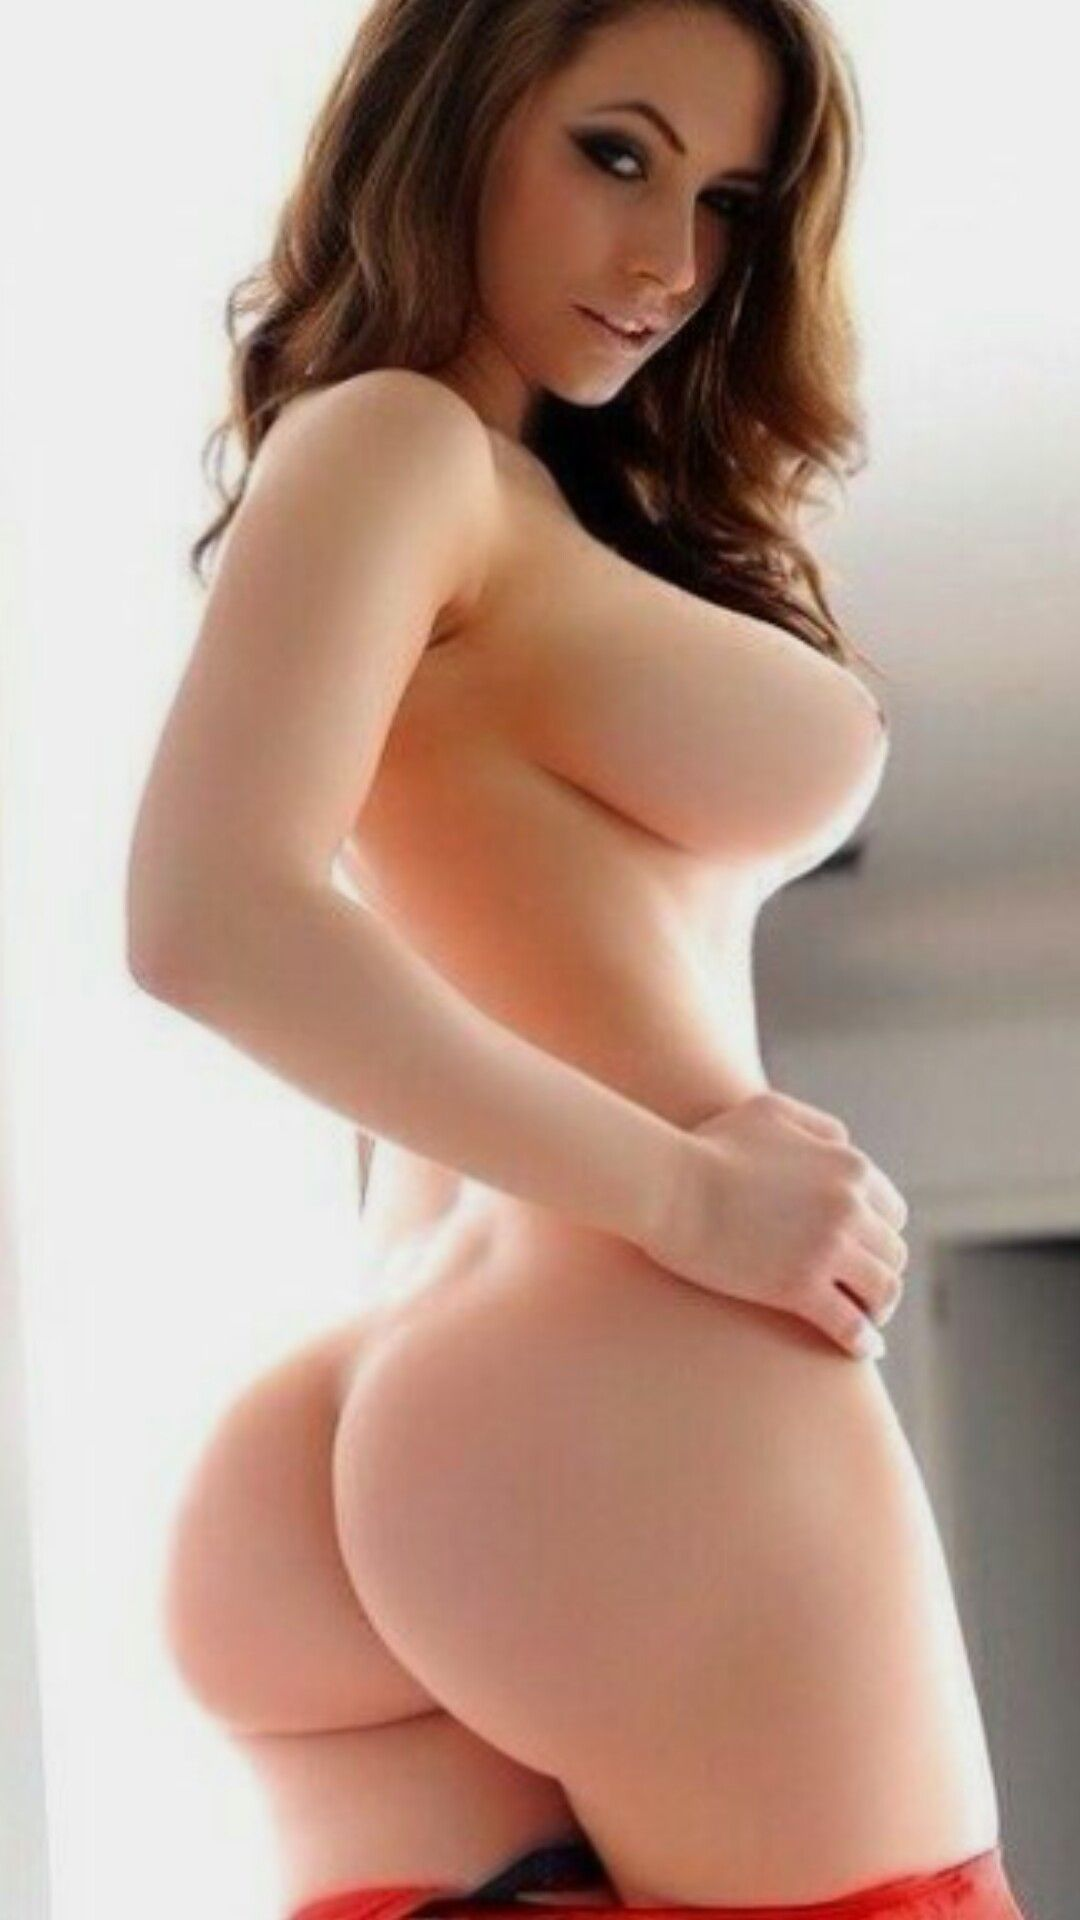 Body!! japanese woman nice butt nude